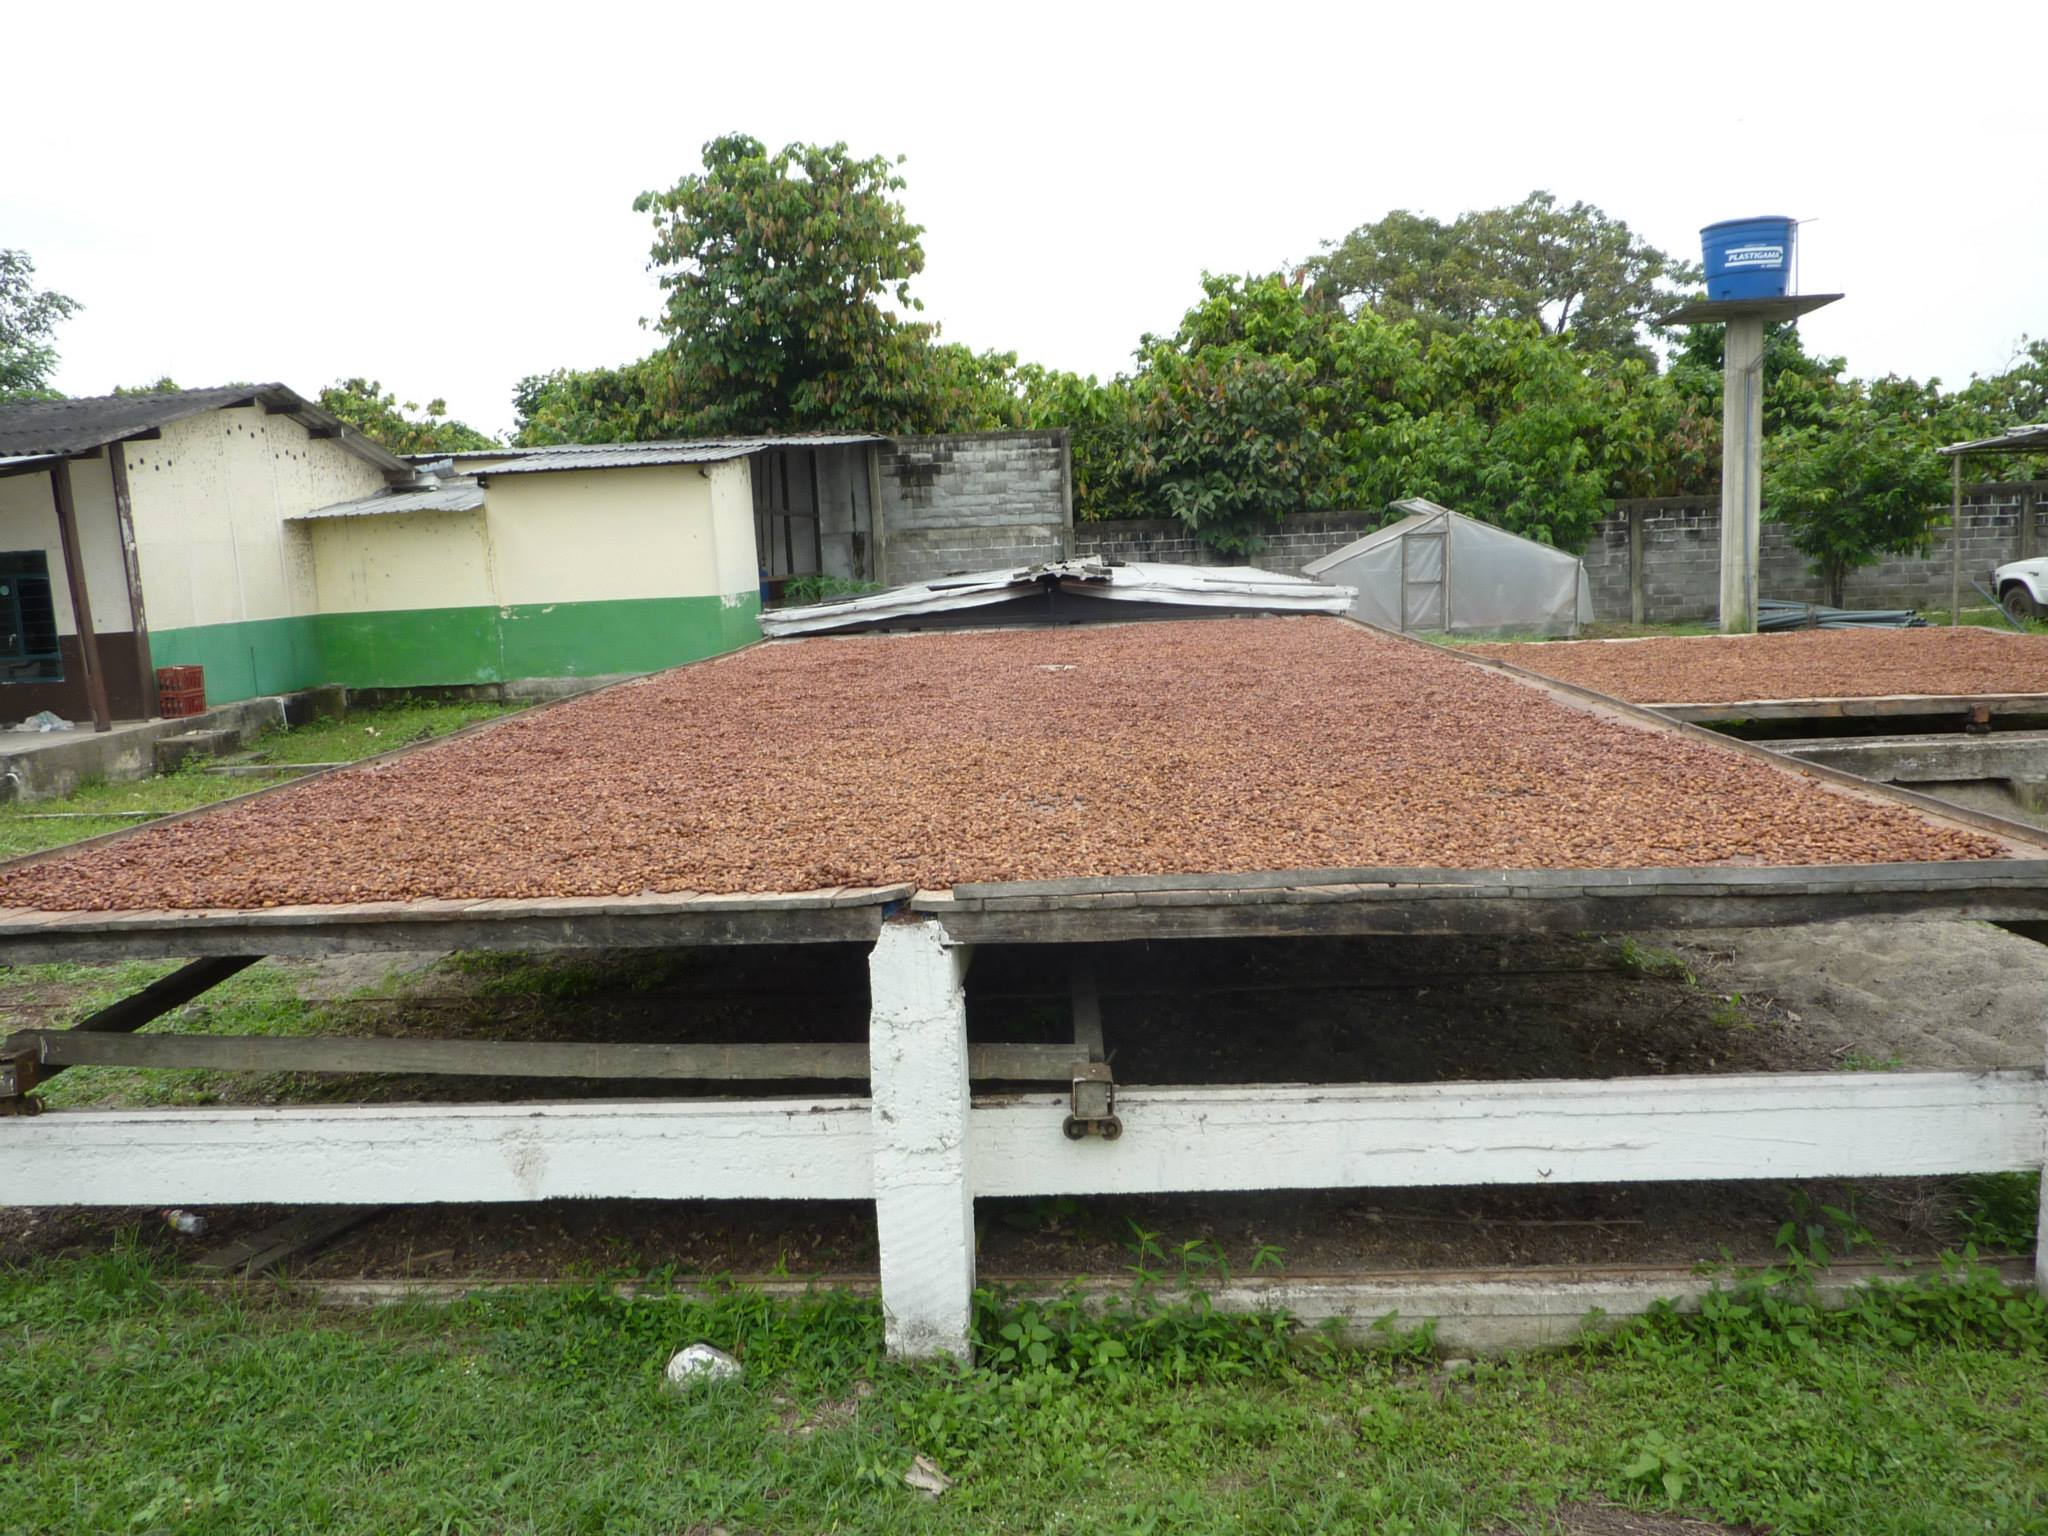 Cacoa beans being dried after harvest in Ecuador. Image Courtesy: creochocolate.com